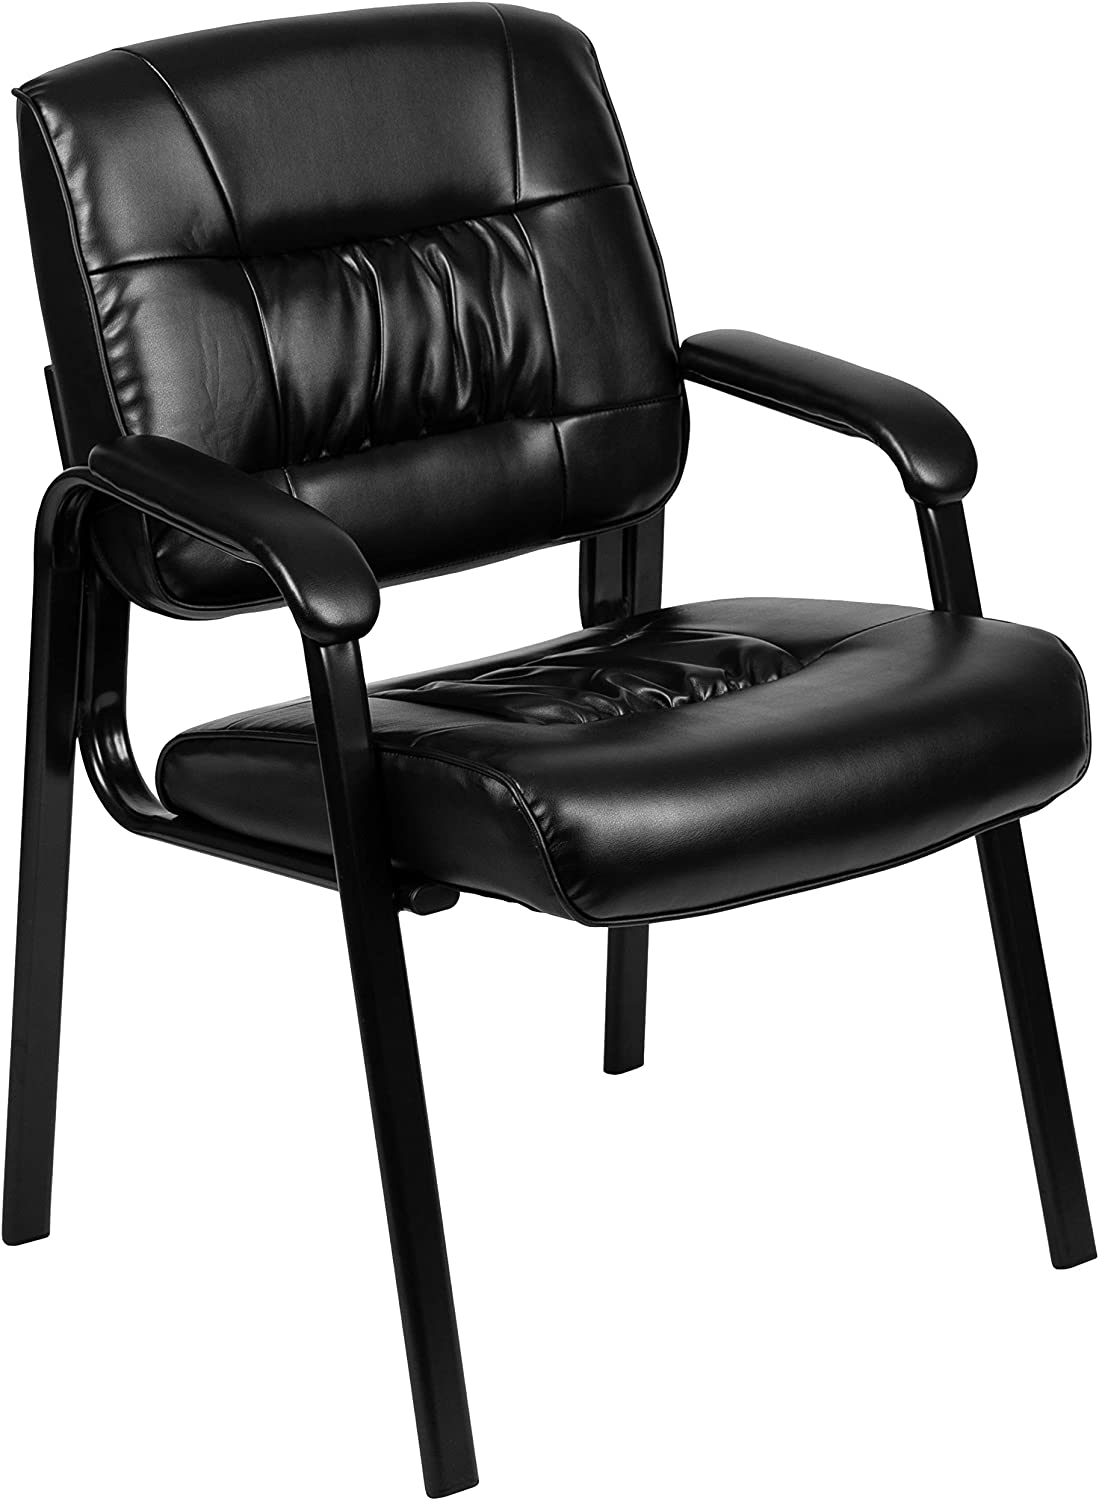 Flash Furniture Black LeatherSoft Antimicrobial / Antibacterial Medical Side Chair with Black Metal Frame